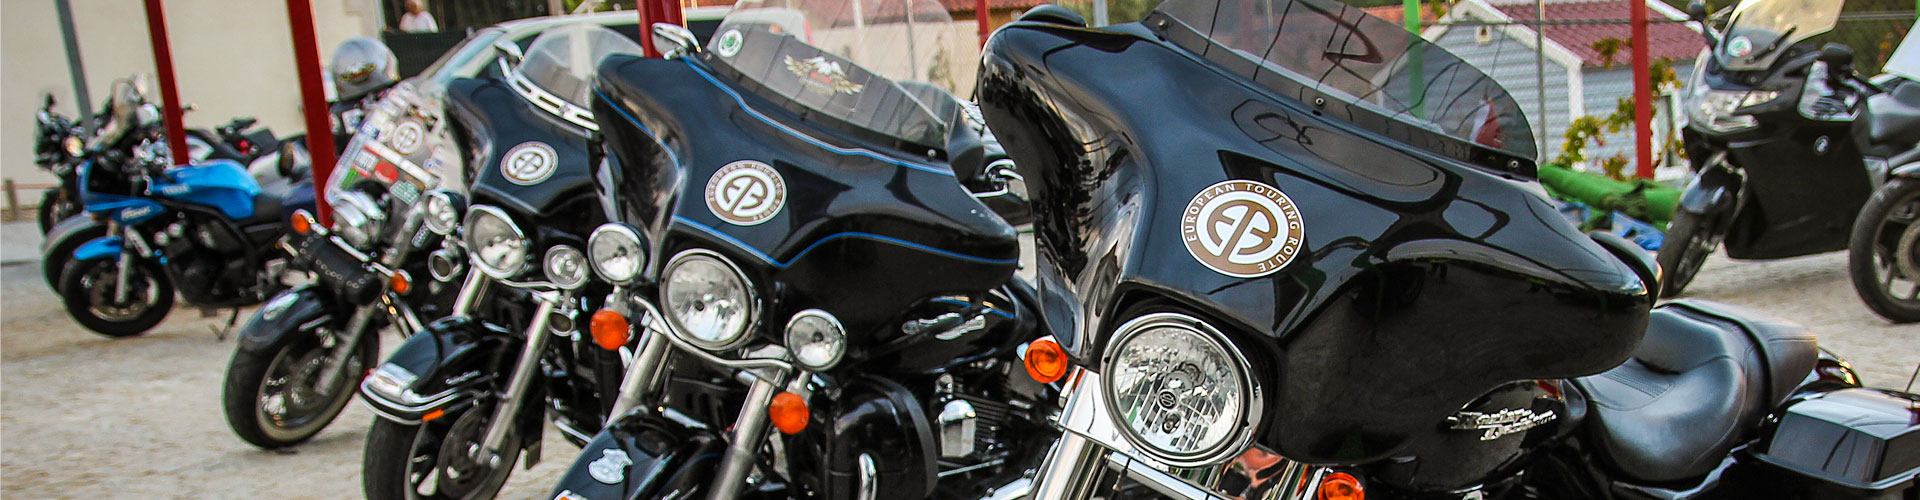 ALL TYPES OF MOTORCYCLES FOR ALL TYPES OF RIDERS